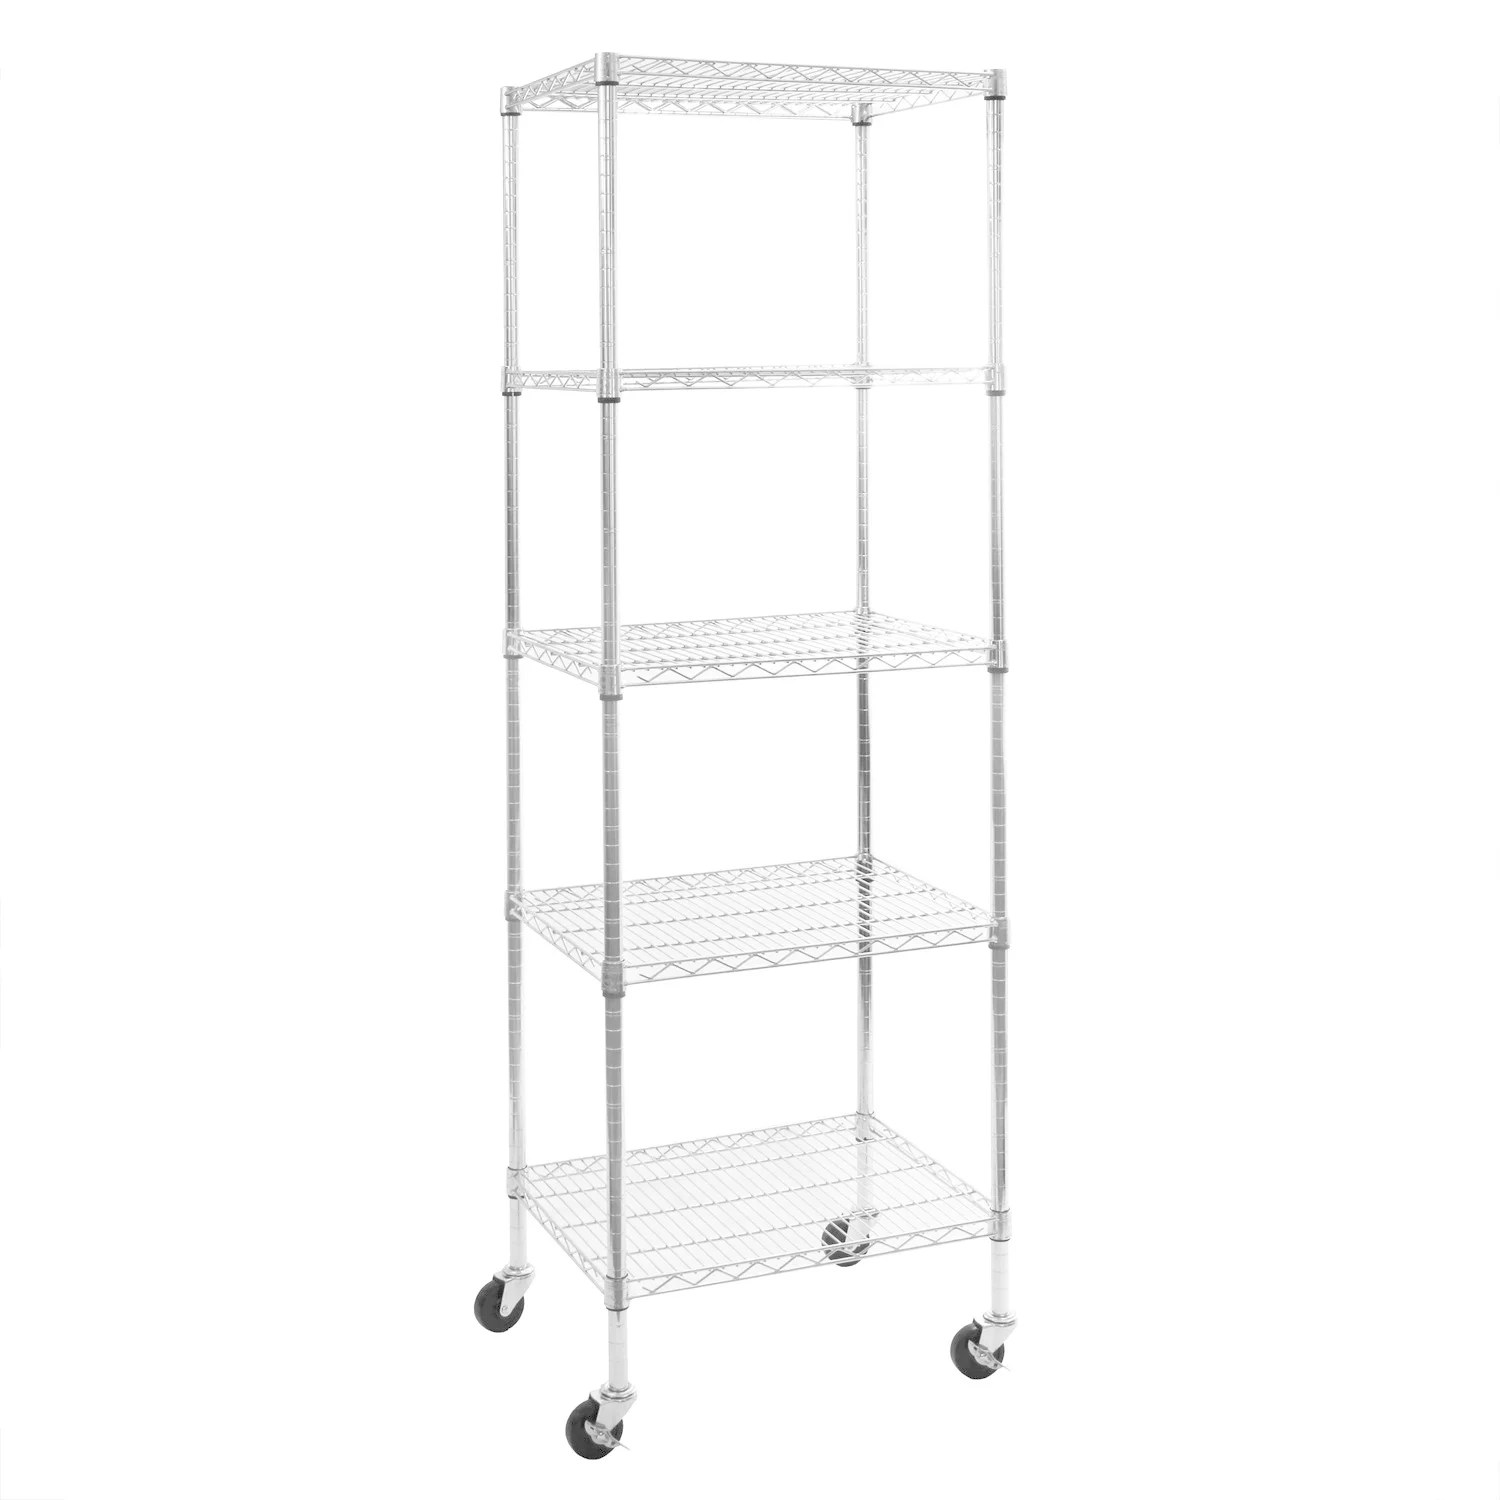 Metal Shelving Seville Classics 24 In W X 18 In D X 72 In H Ultradurable Commercial Grade 5 Tier Nsf Certified Steel Wire Shelving With Wheels